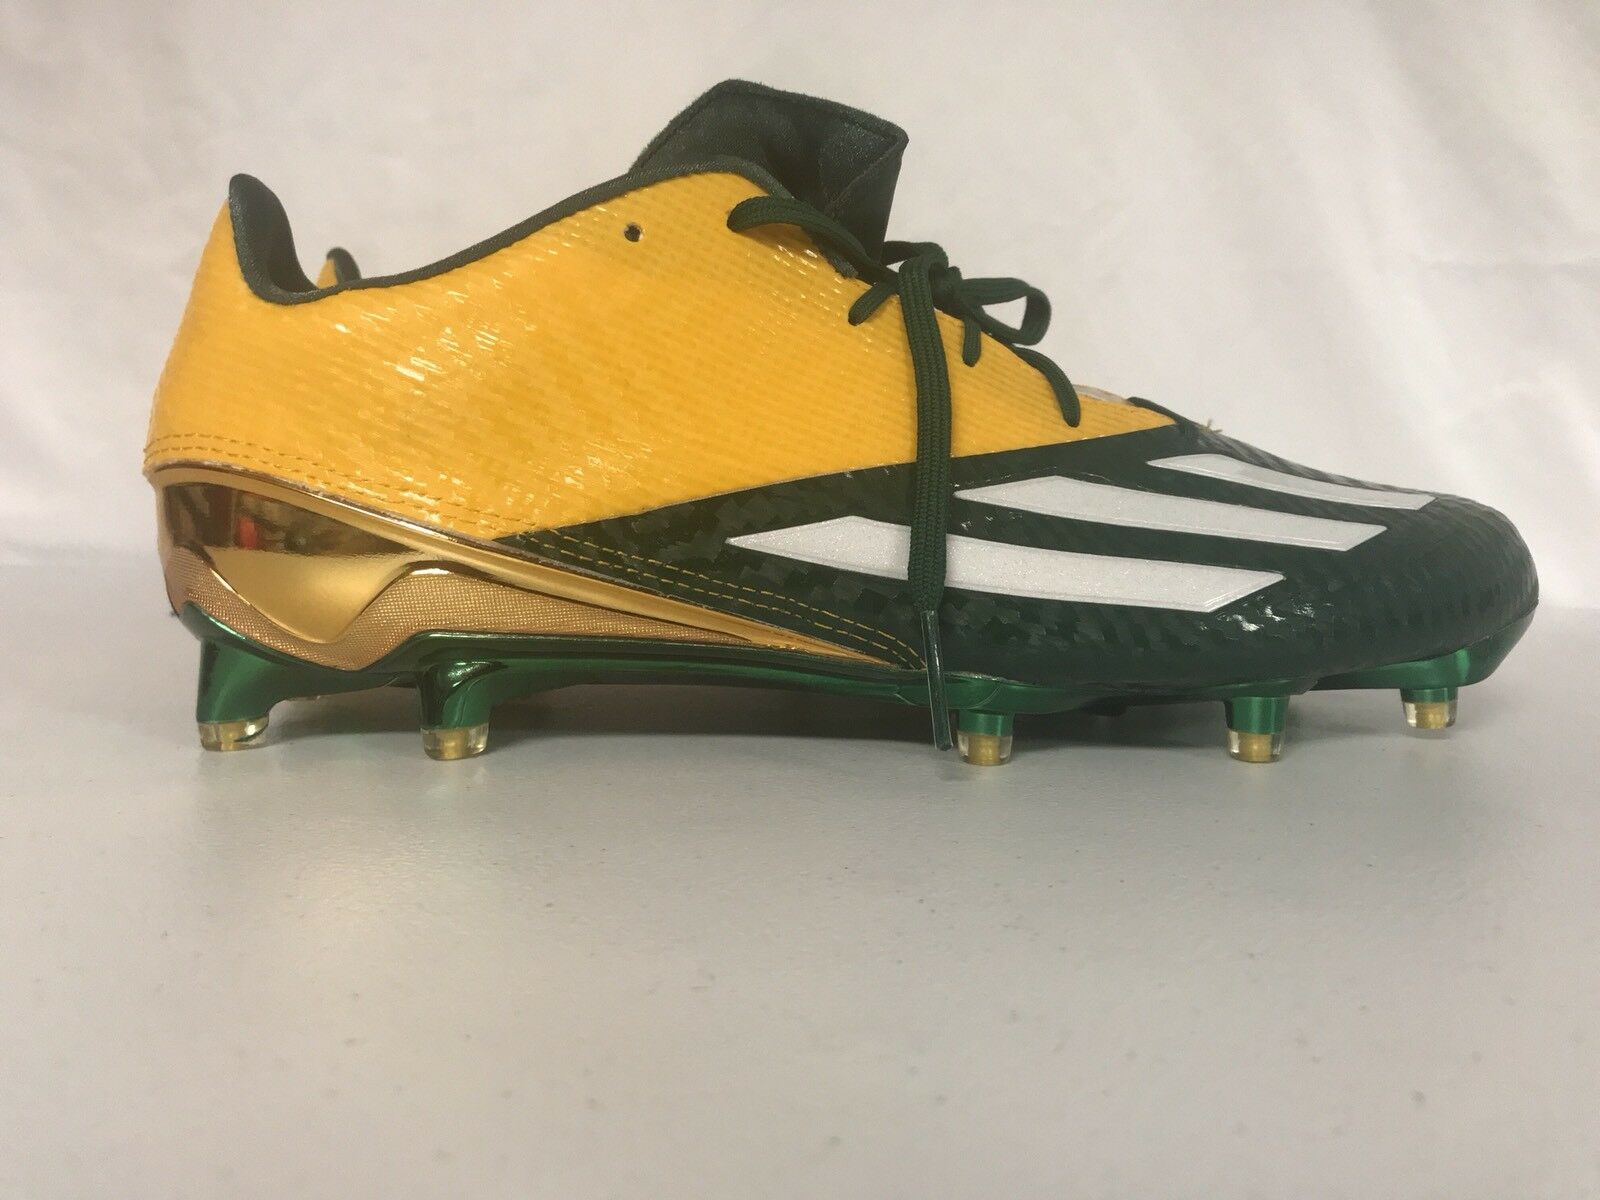 5efe27bffc0 Adidas Men s AdiZero 5 Star 5.0 Football Cleats Green Yellow Size 12 Low Top